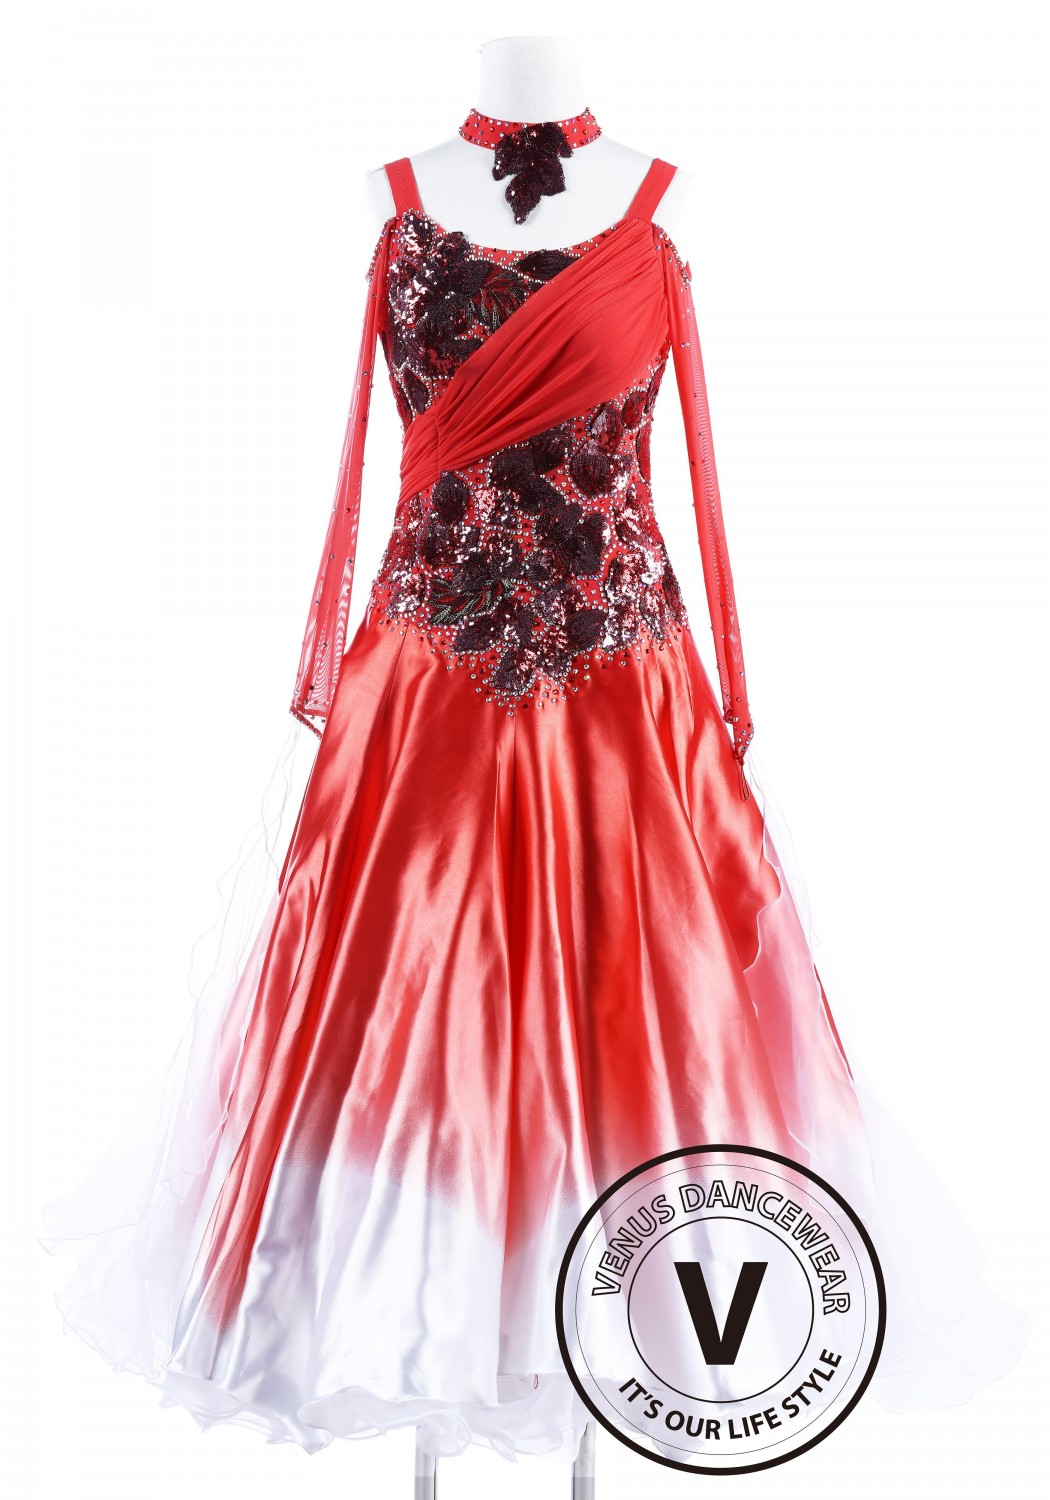 Red Poppy with White Edge Waltz Quickstep Competition Dancing Dress